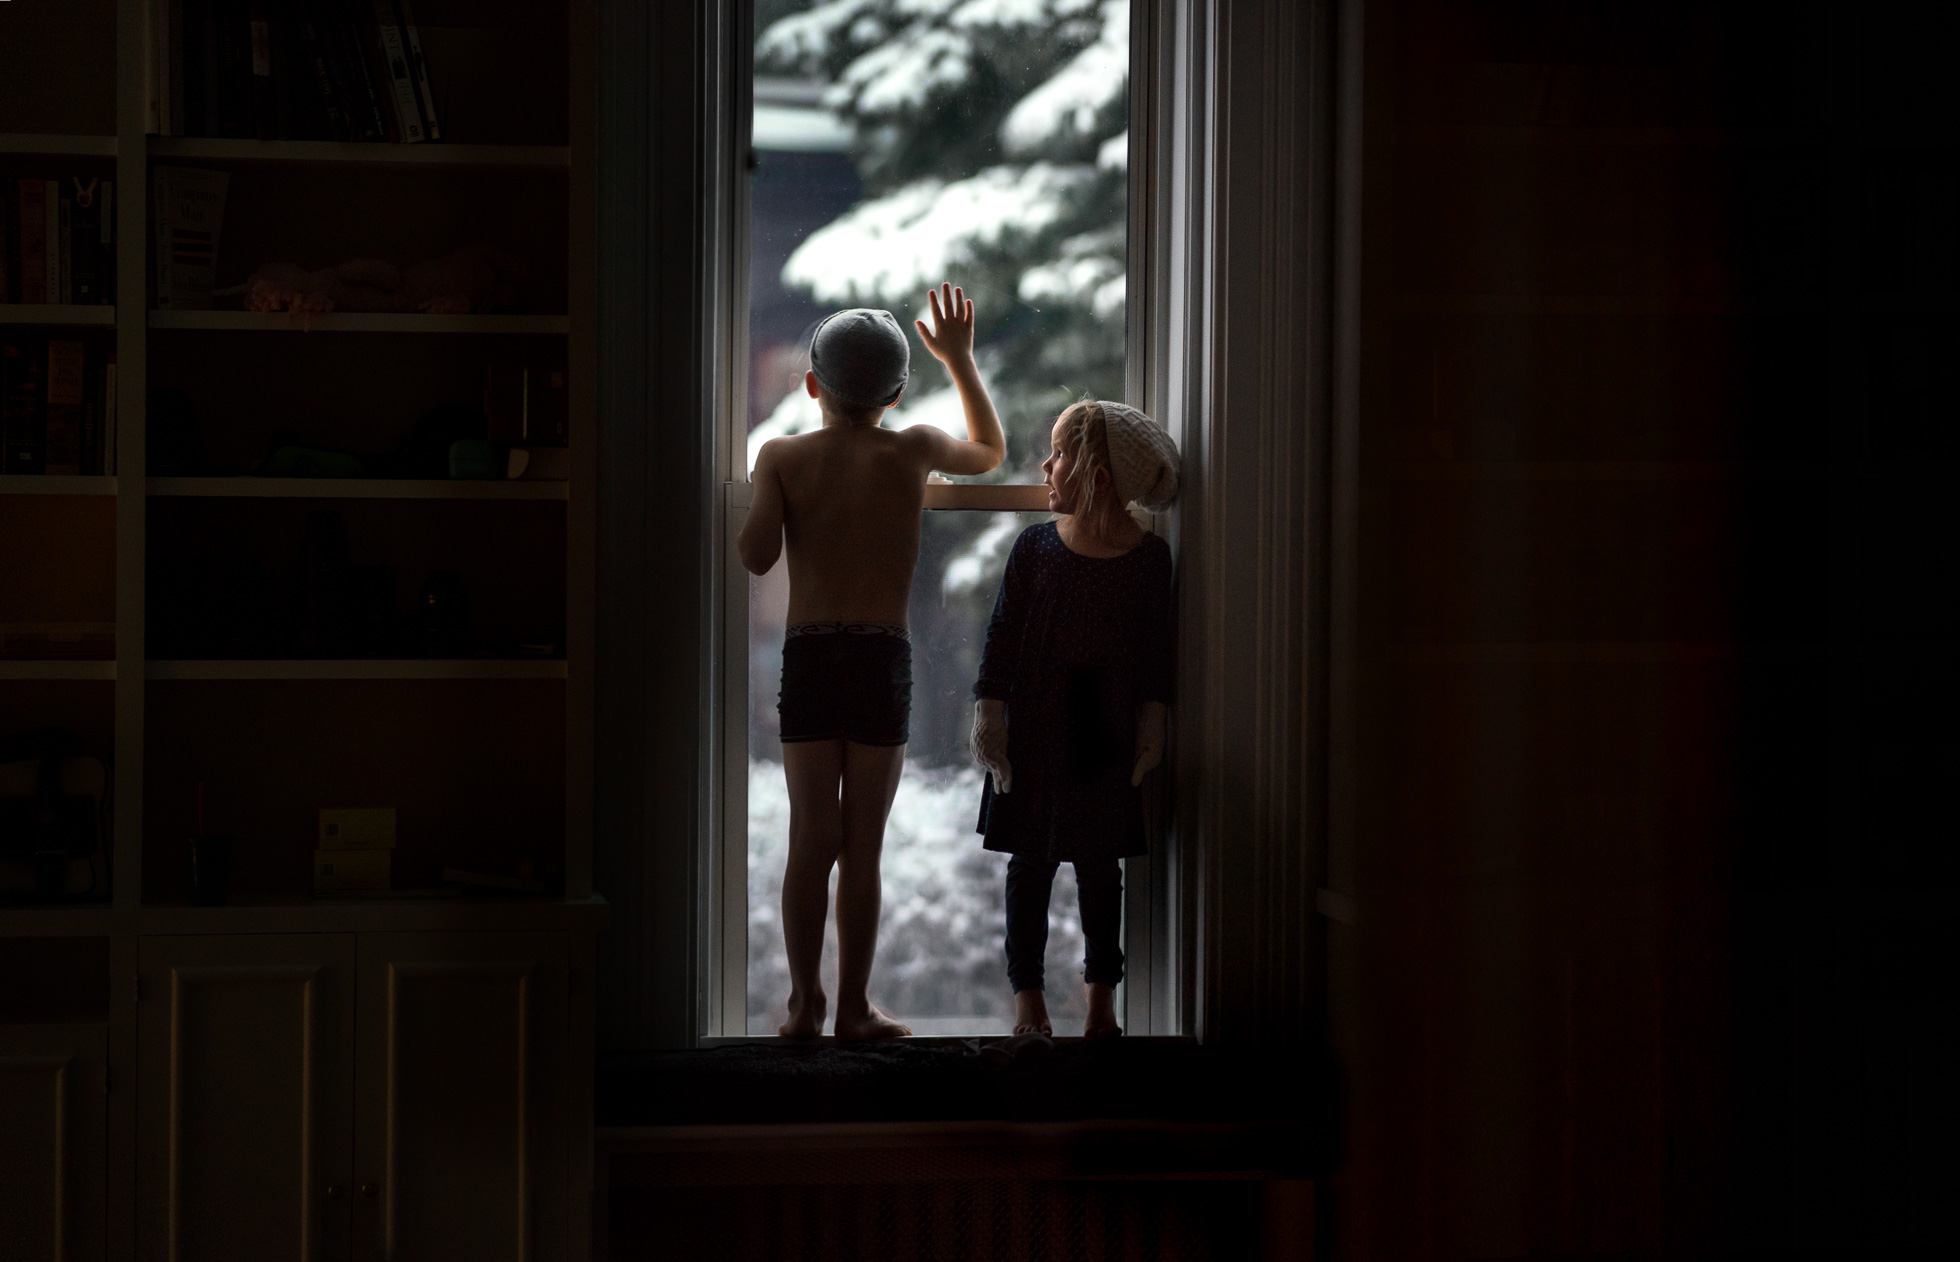 low-light-documentary-photo-of-brother-and-sister-looking-outside-window-after-playing-in-the-snow-on-a-snow-winter-day-by-sarah-wilkerson